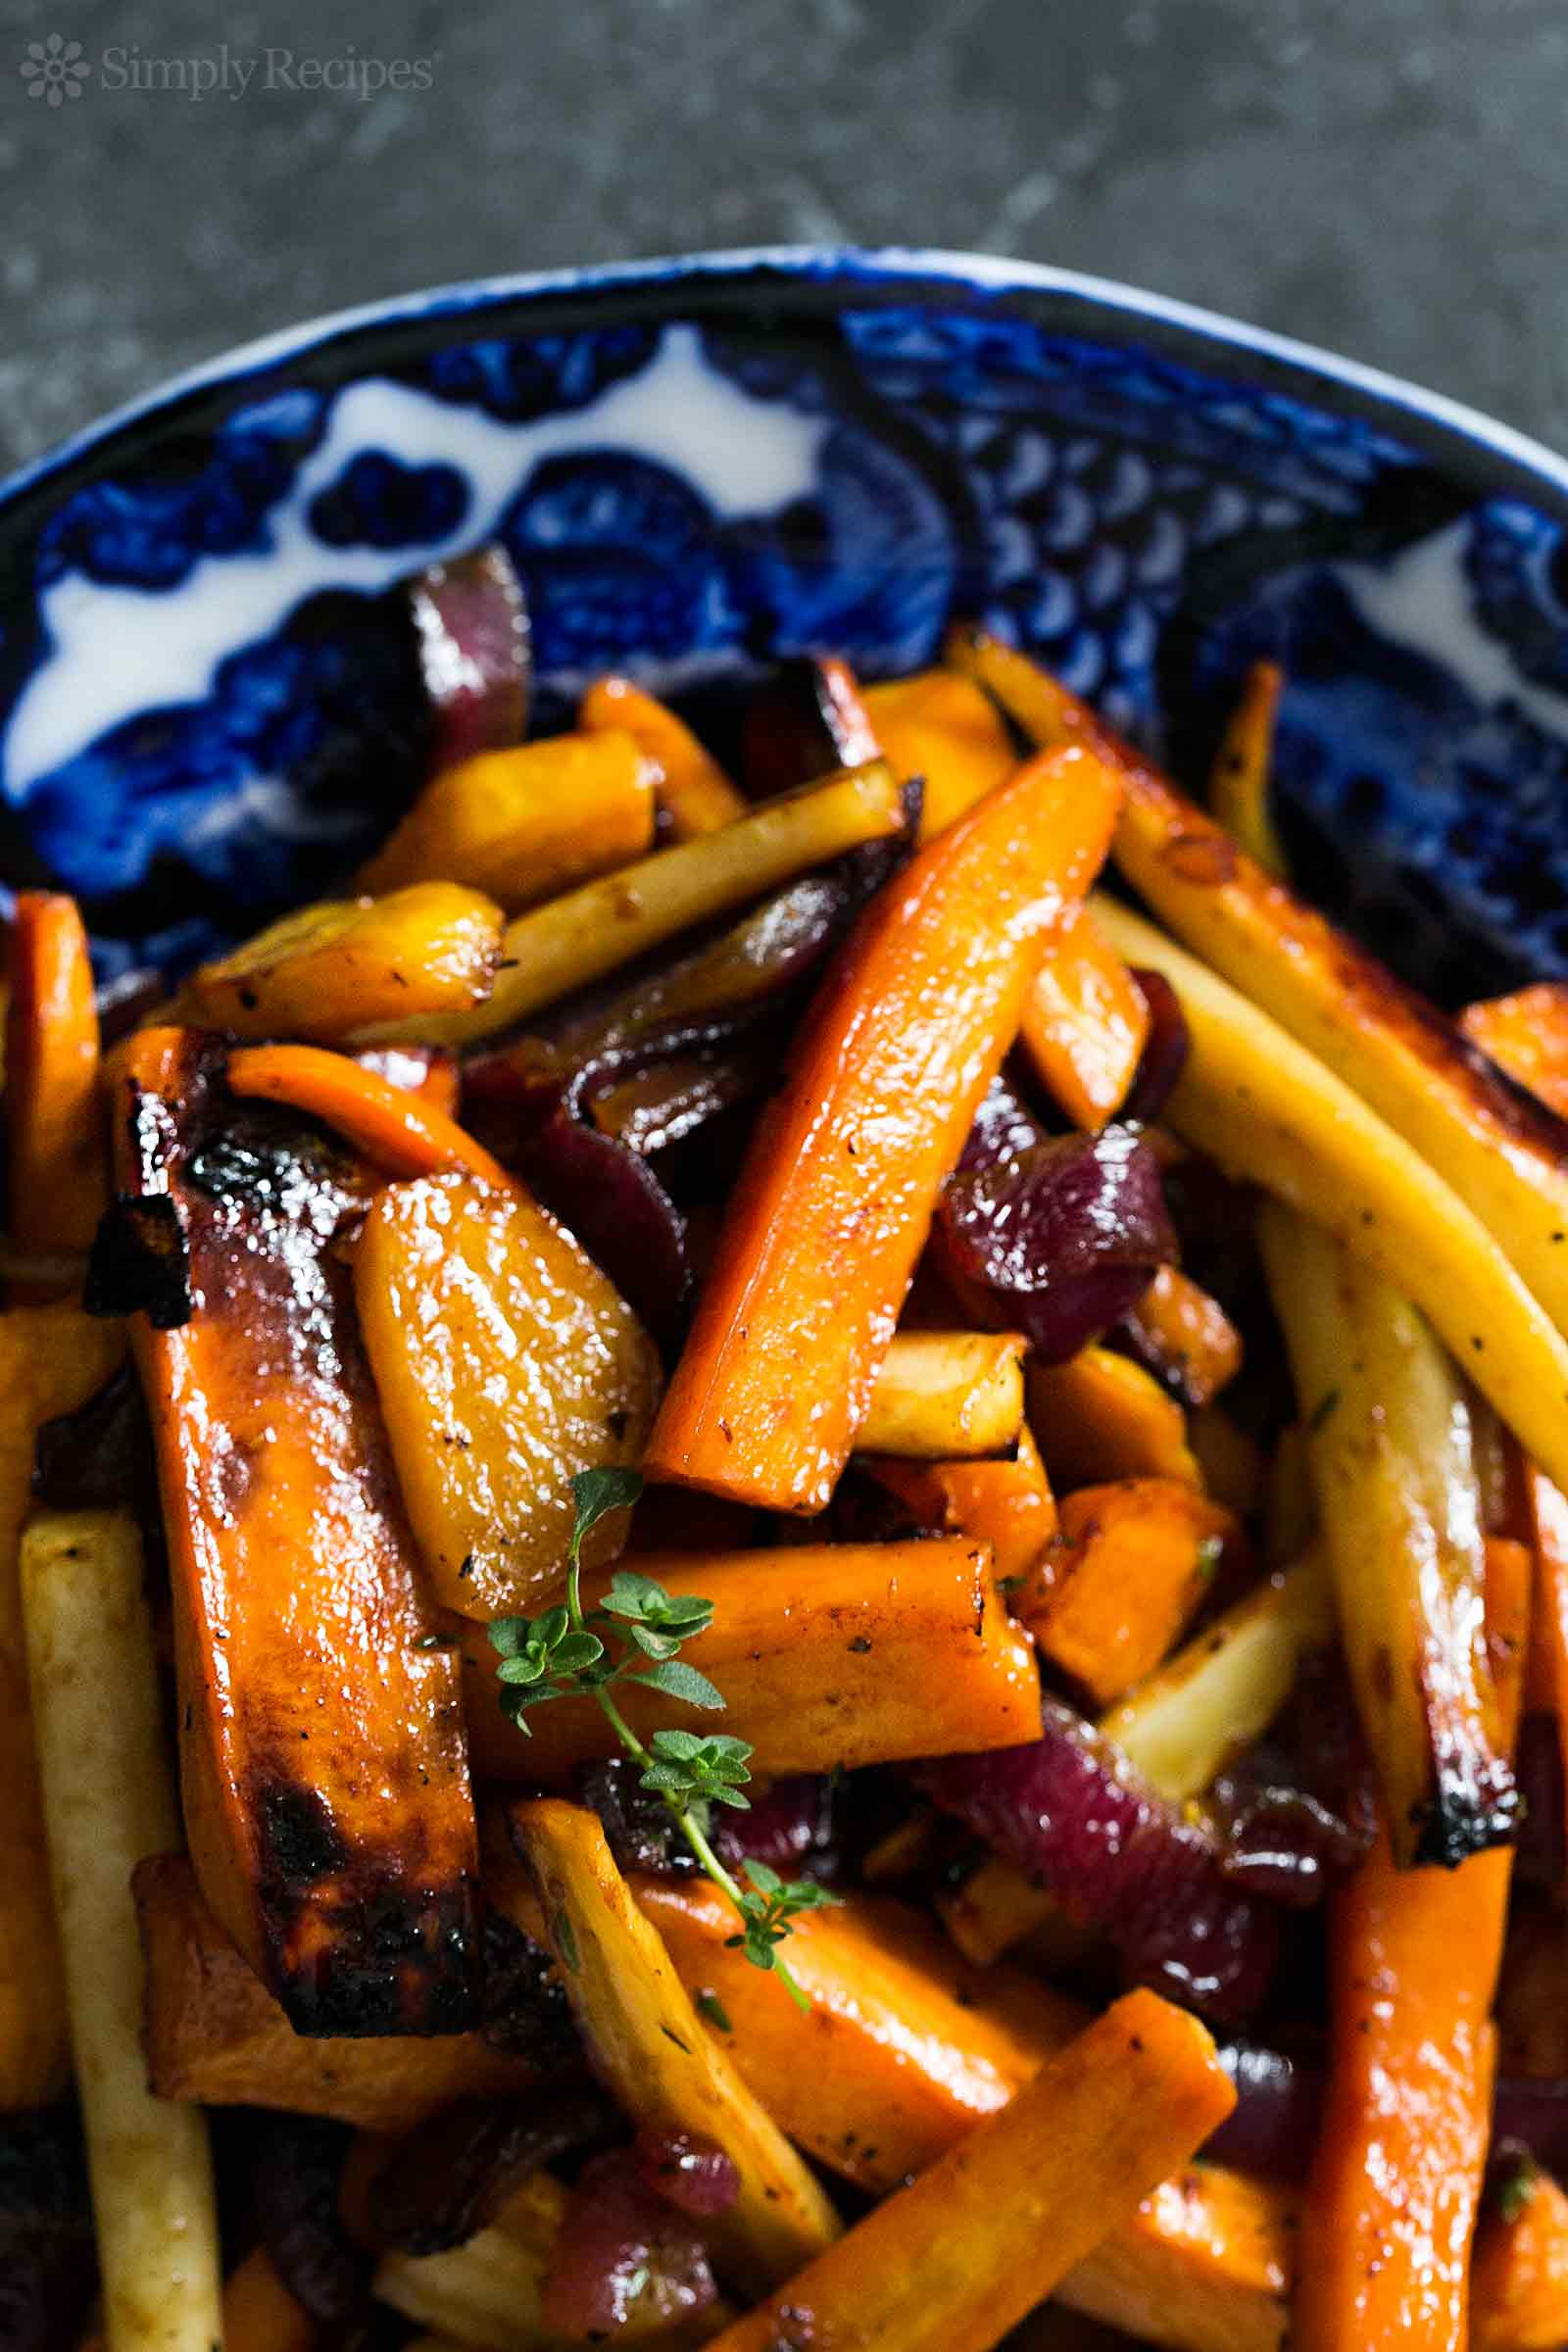 Roasted Vegetables Recipes  Cider Roasted Root Ve ables